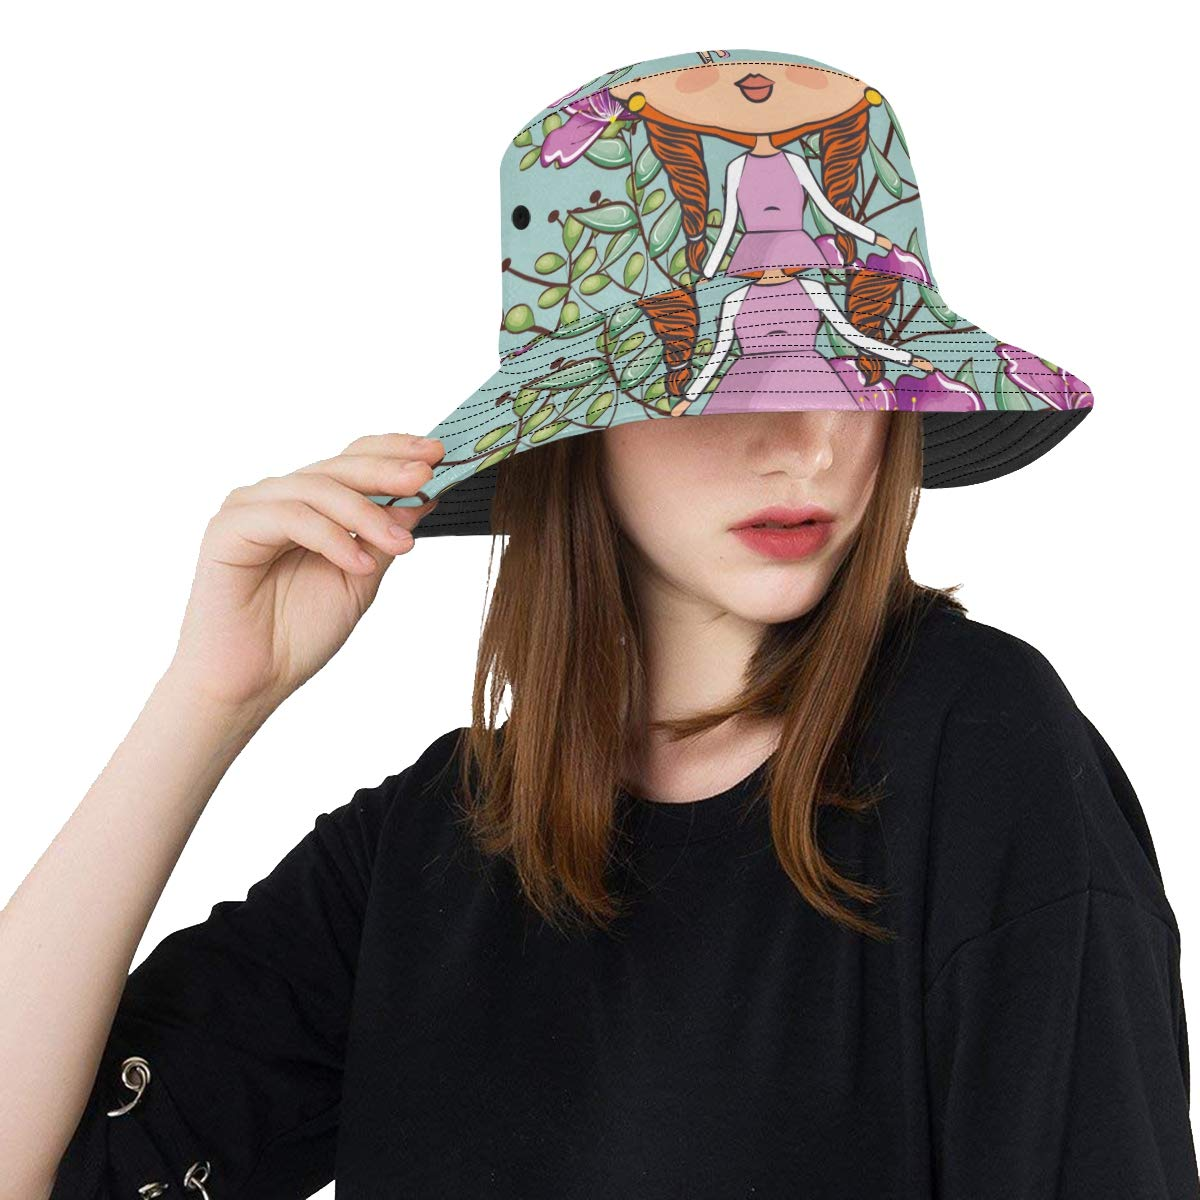 Elegant Lady with Beautiful Flower New Summer Unisex Cotton Fashion Fishing Sun Bucket Hats for Kid Teens Women and Men with Customize Top Packable Fisherman Cap for Outdoor Travel